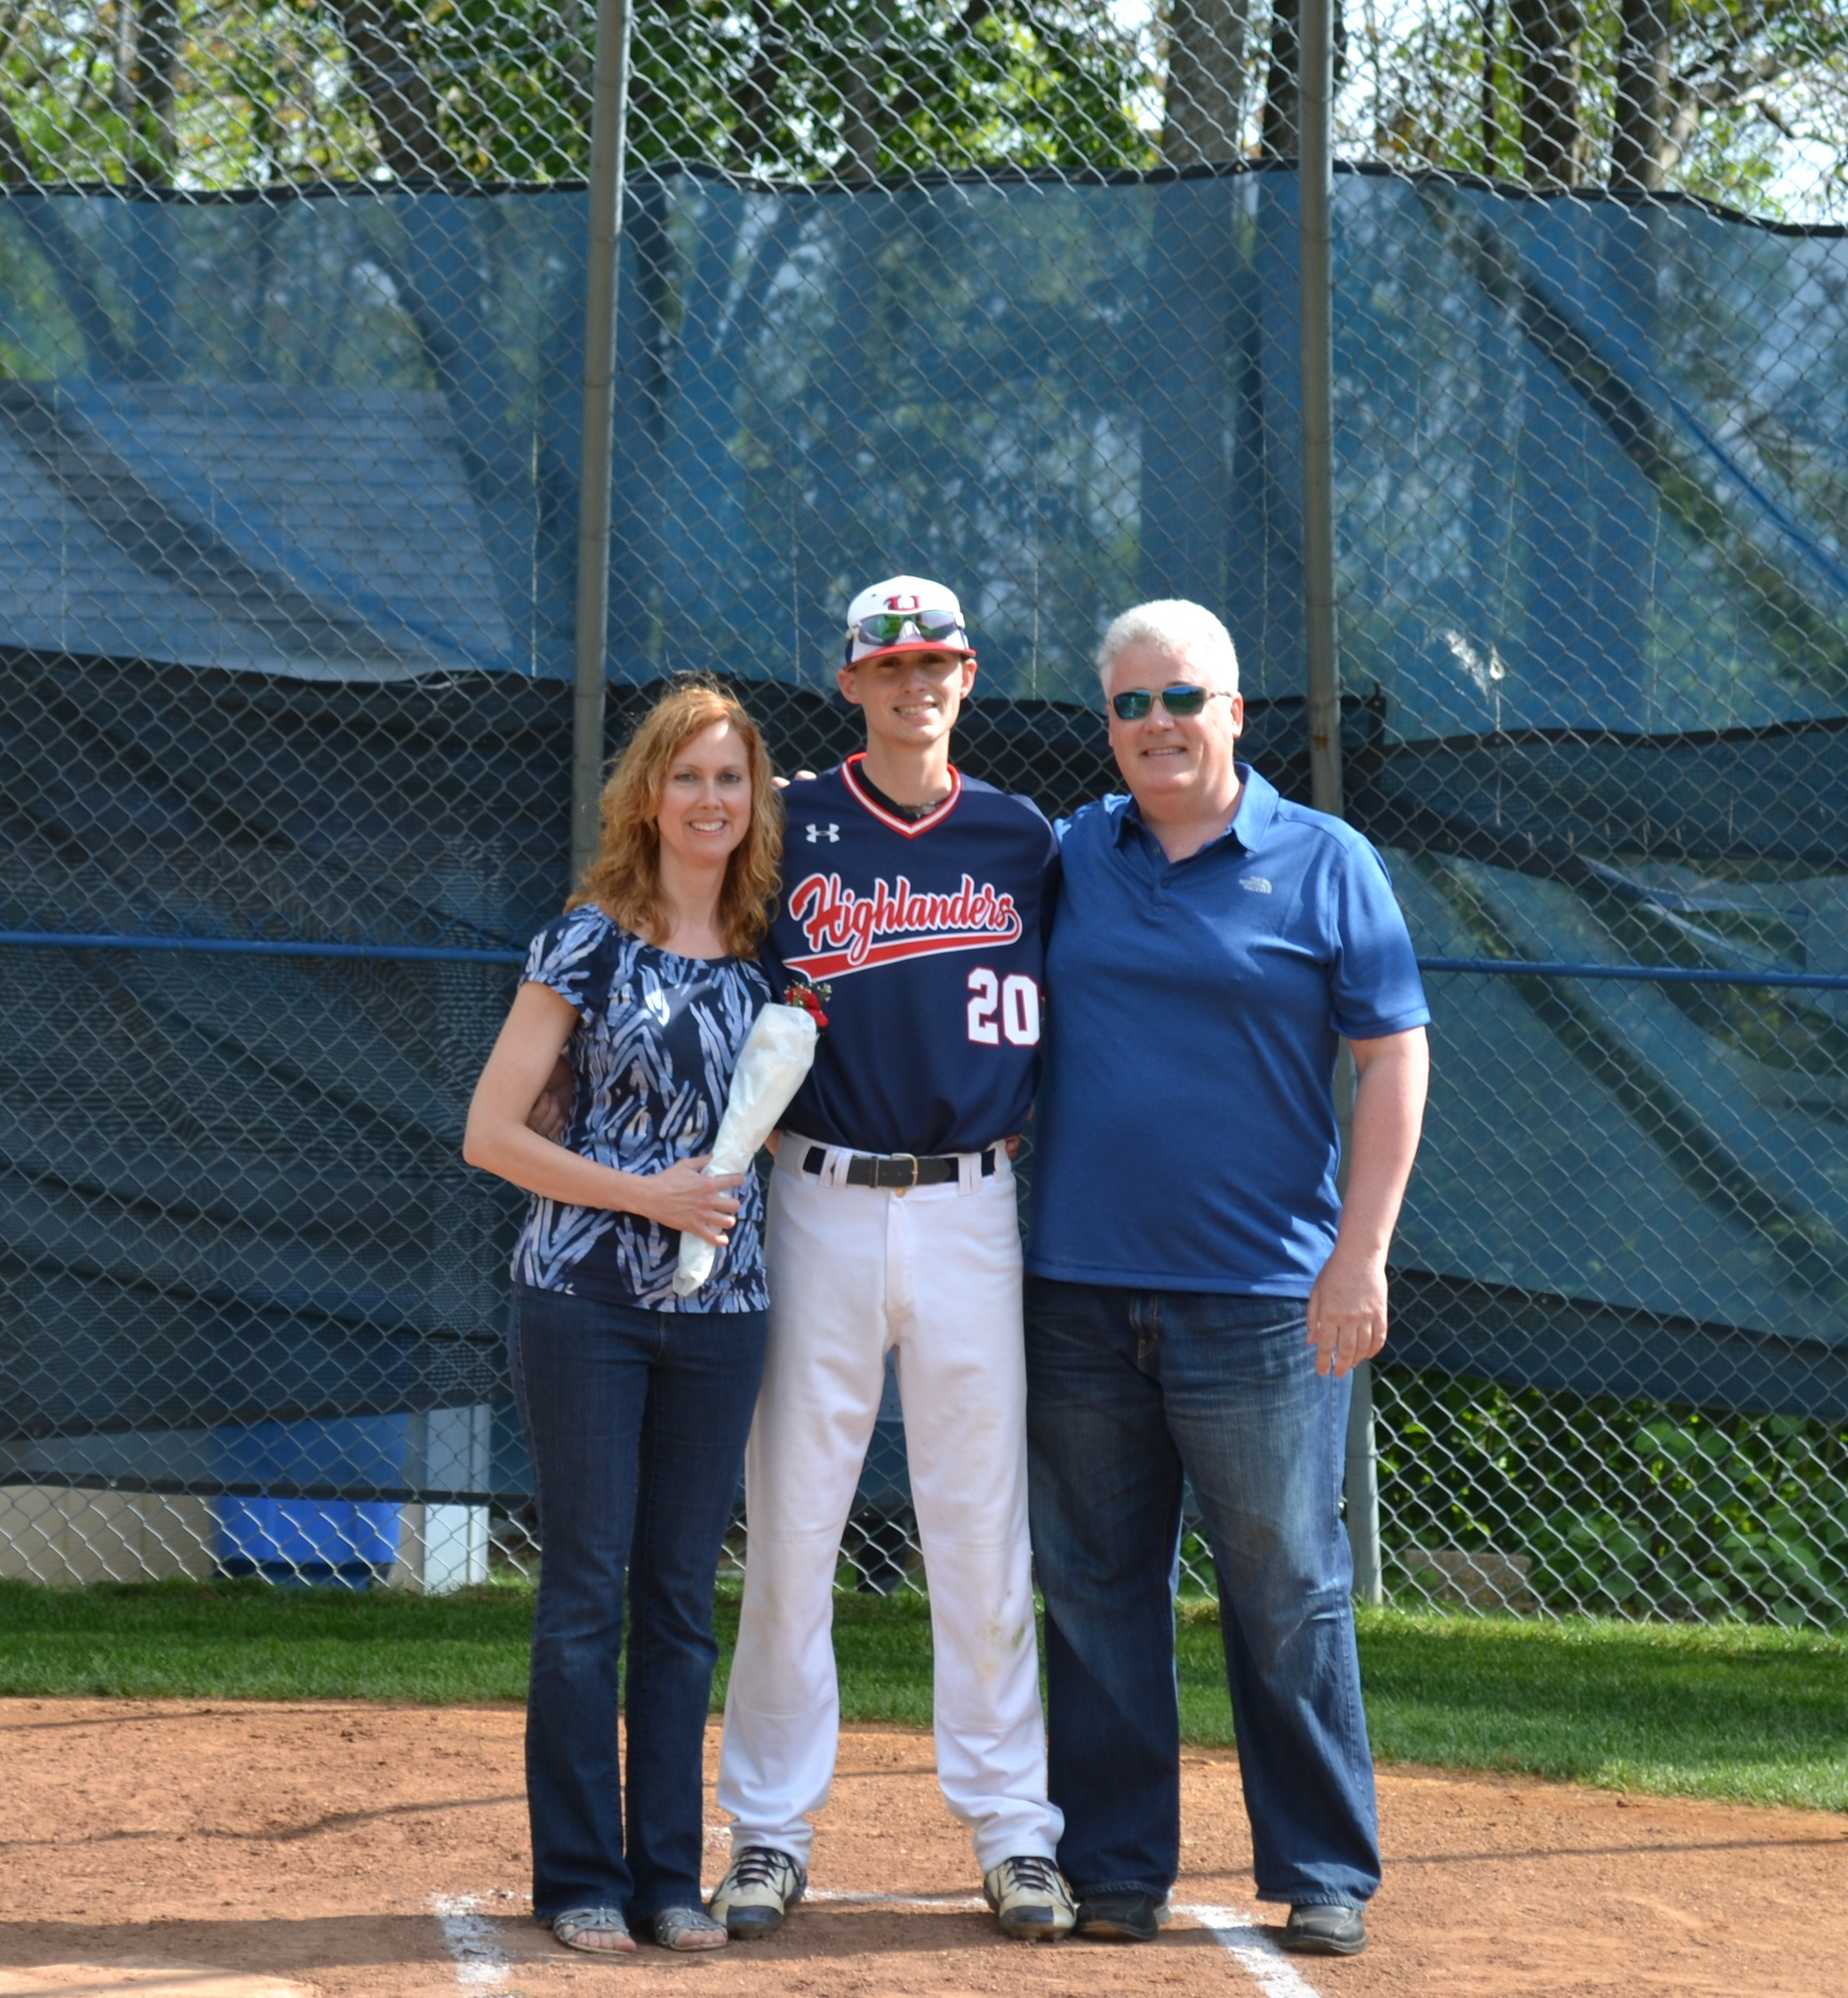 662506863a8b9e814a11_GL_vs._Parsippany_May_19_2016_Senior_Day_Lake_Family.jpg